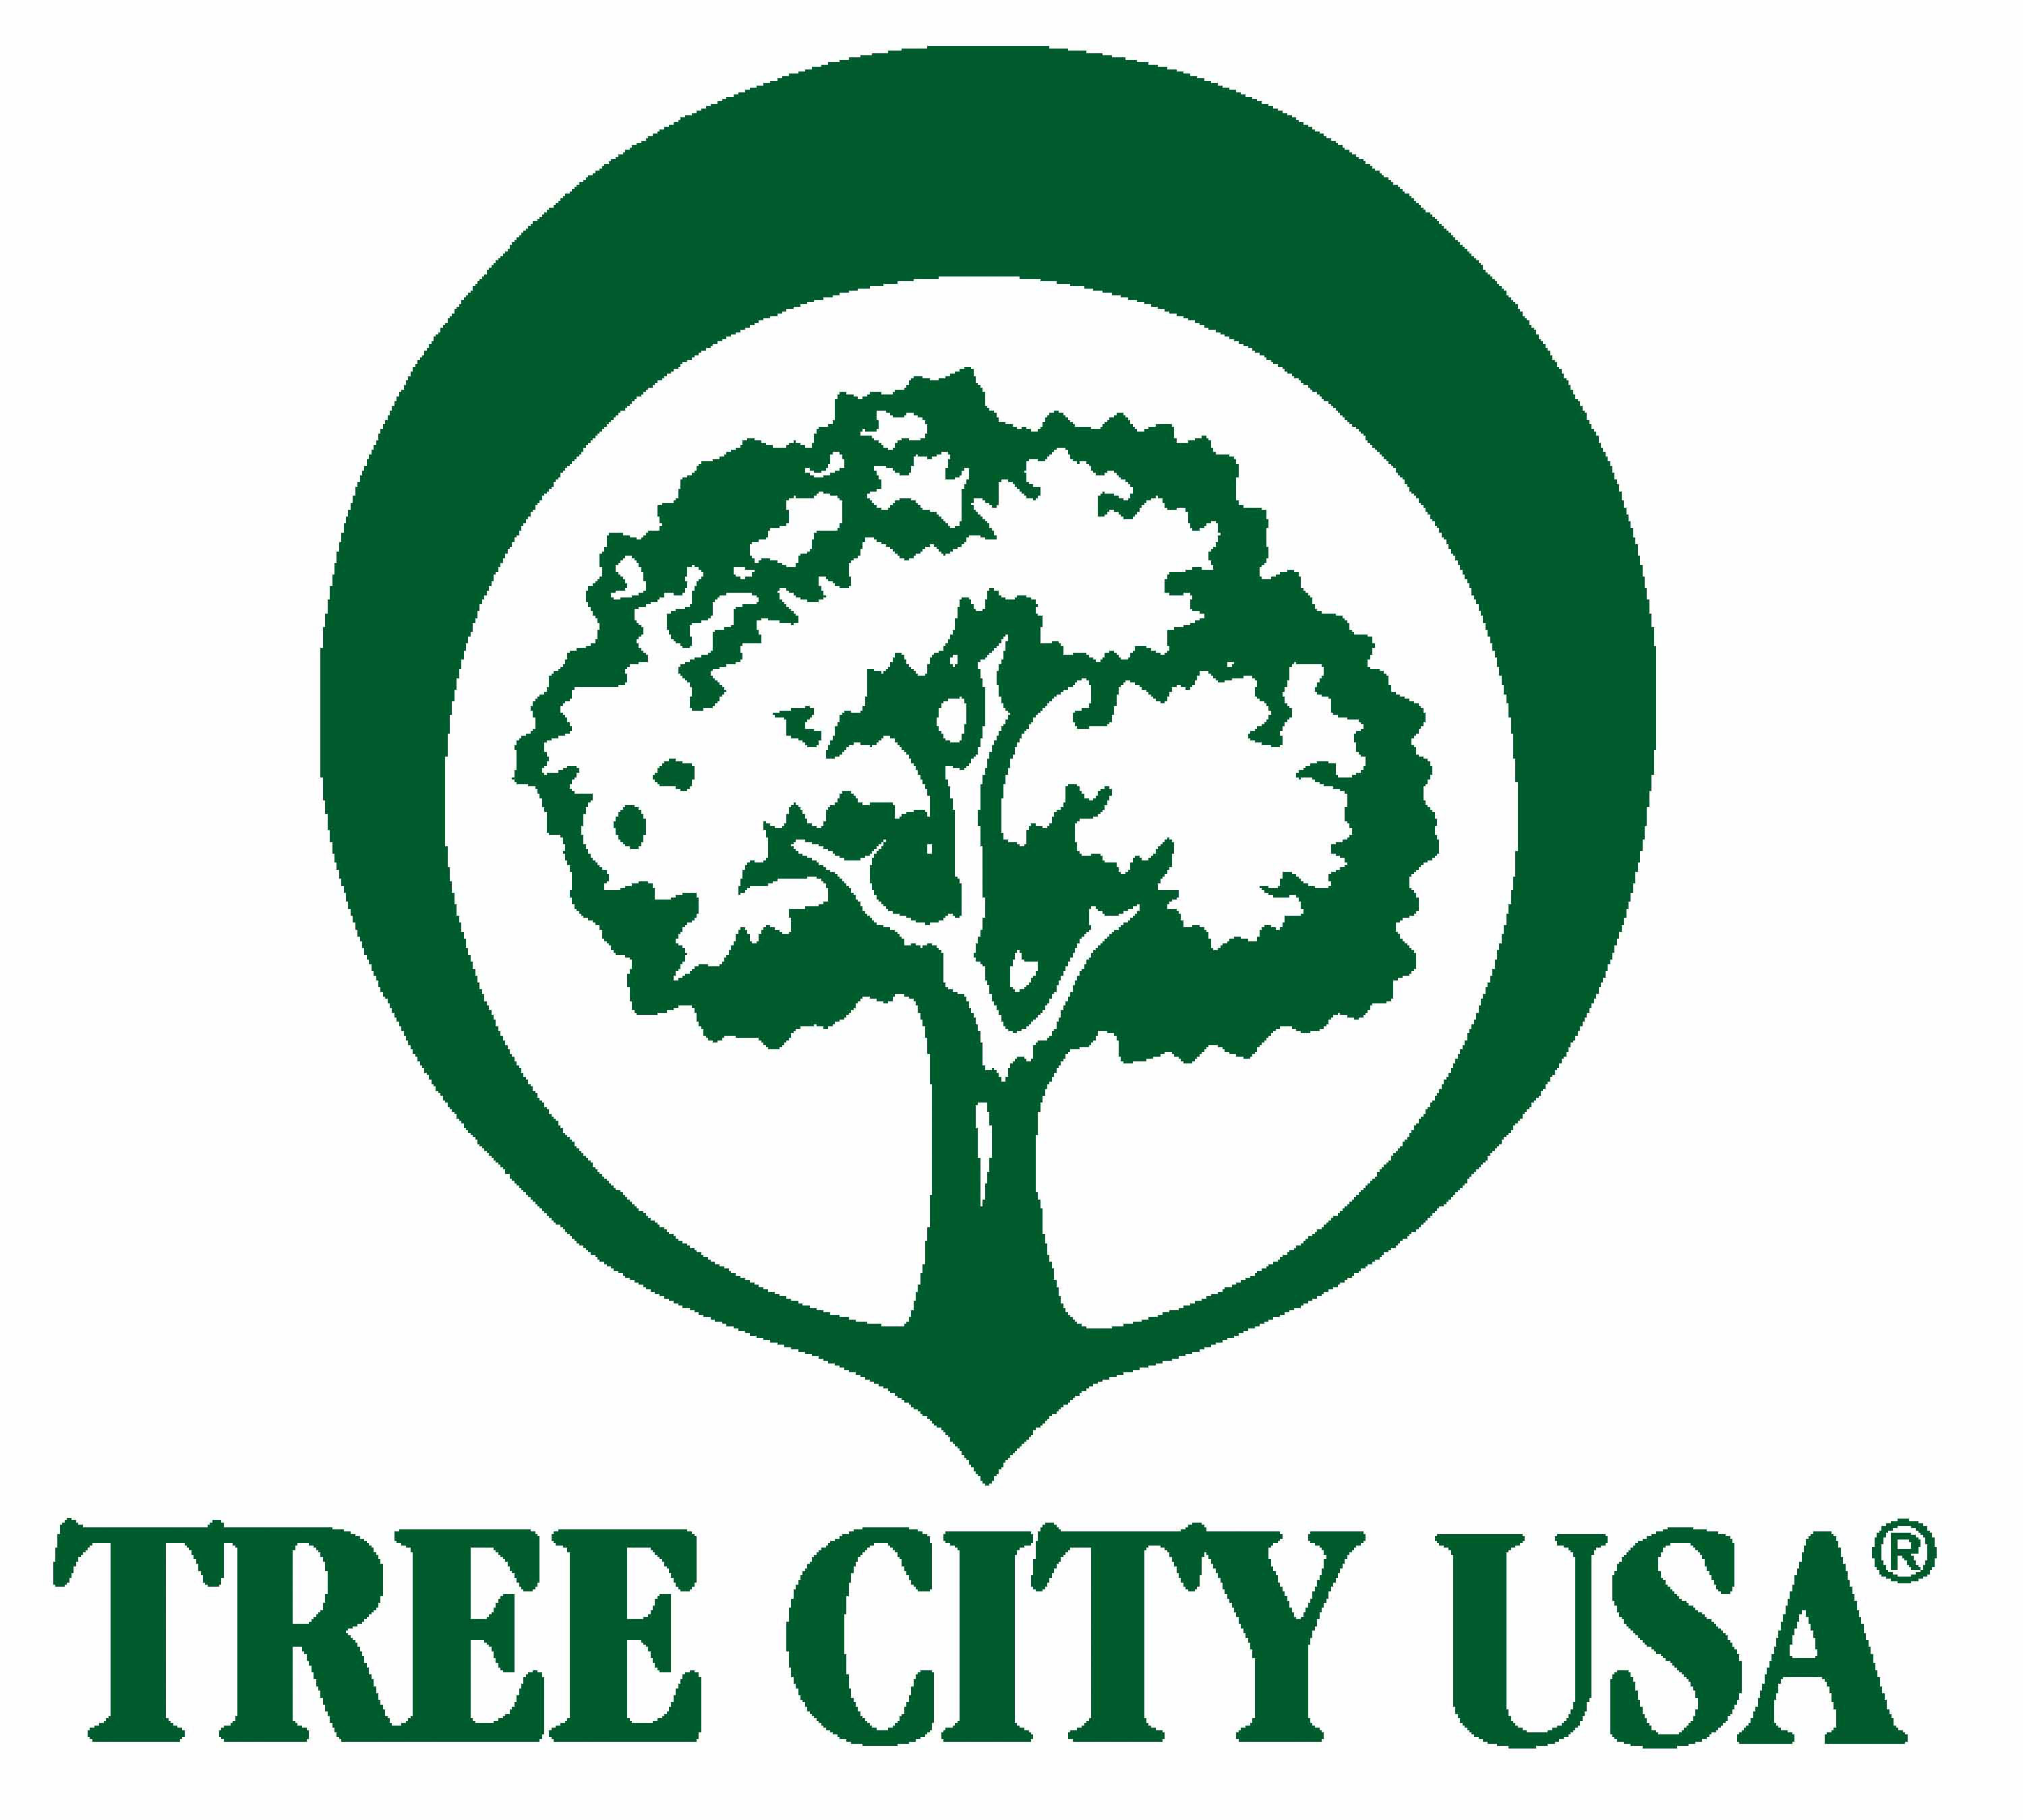 Bend, Oregon: Tree City USA?